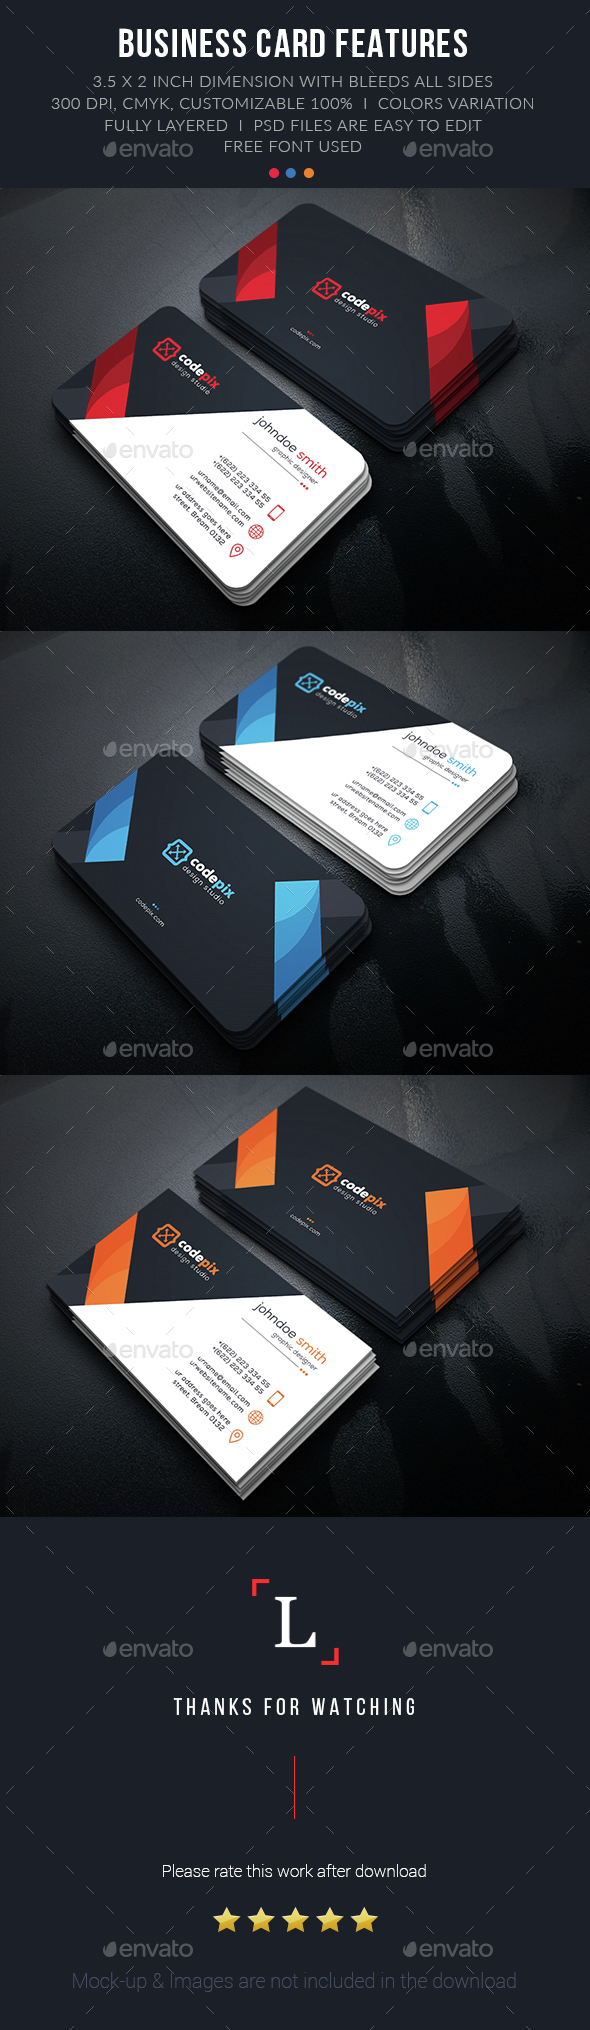 Design Creative Business Card - Business Cards Print Templates